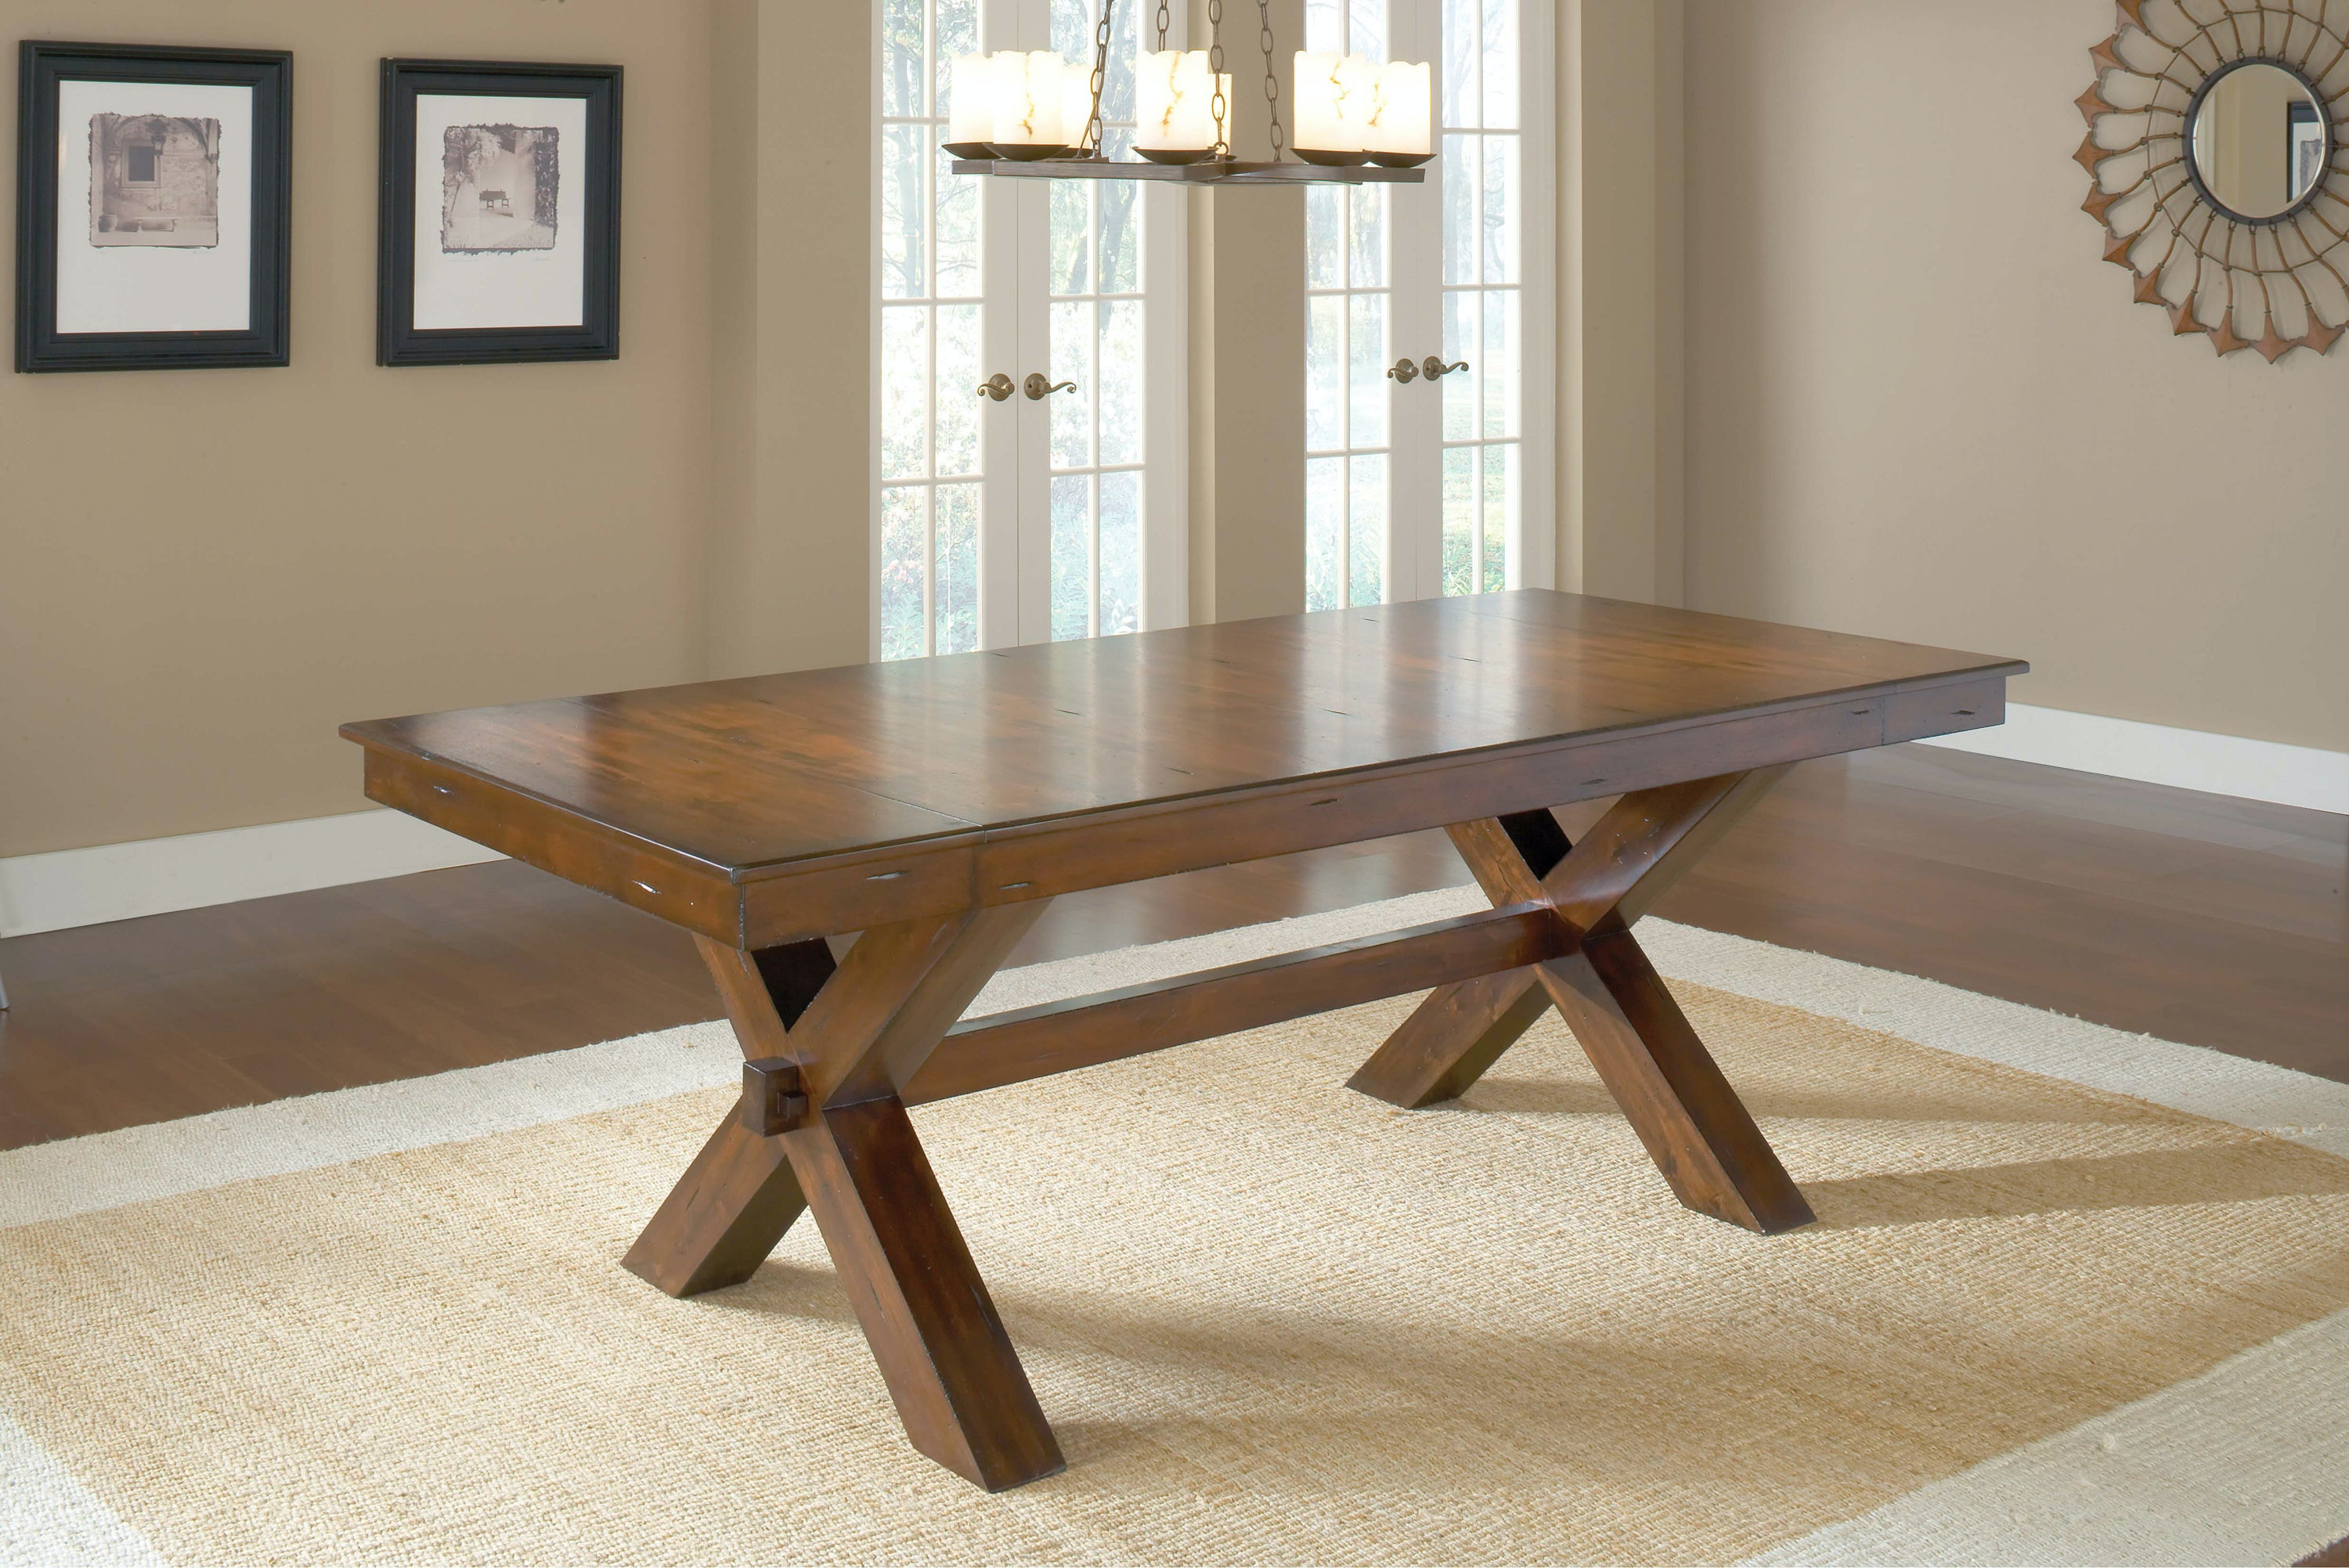 Incroyable Hillsdale Furniture Dining Room Park Avenue Trestle Dining Table   Base  4692 813 At Carol House Furniture